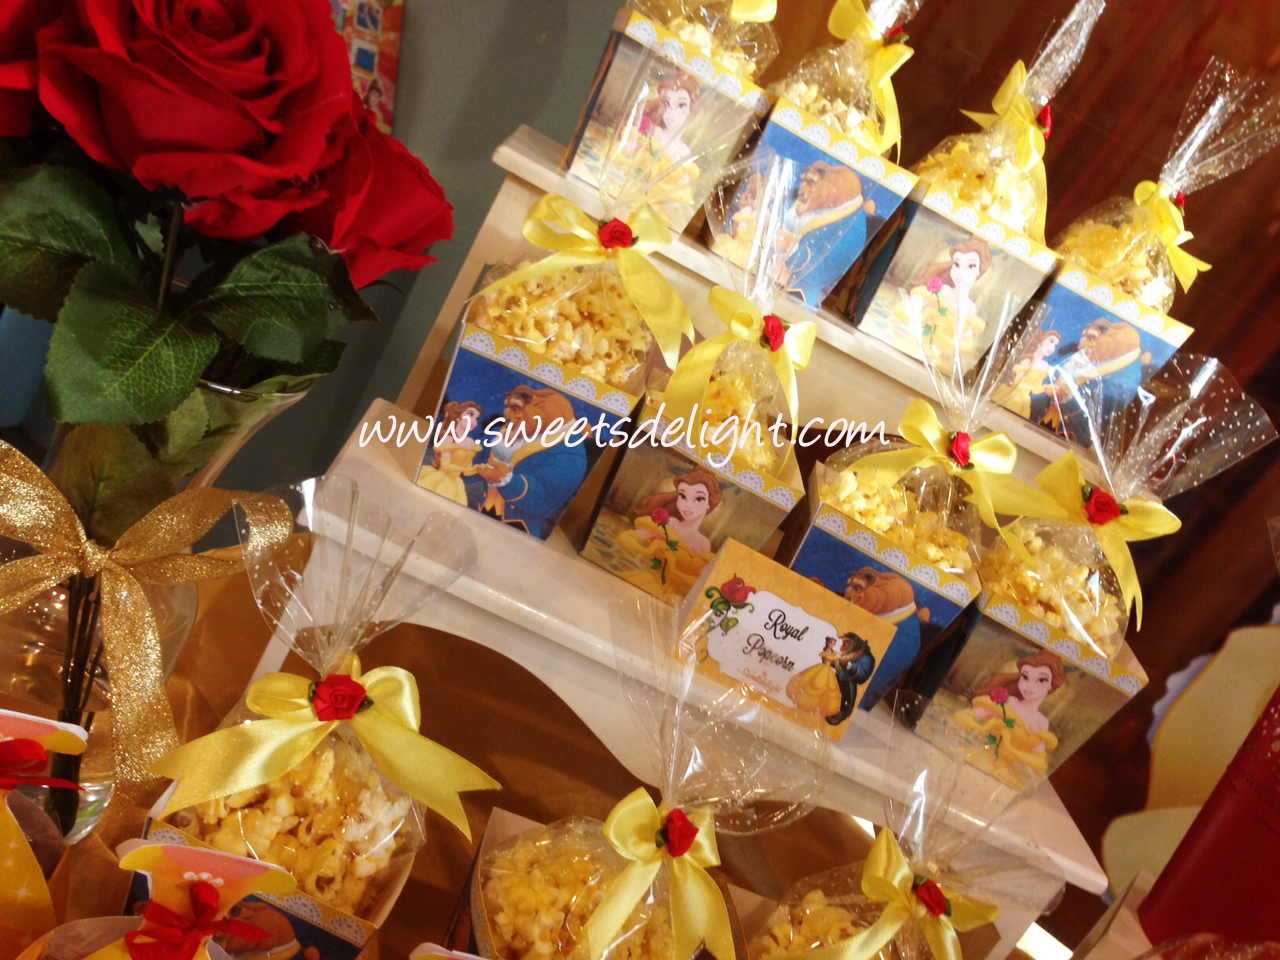 Beauty And The Beast Dessert Table Sweets Delight